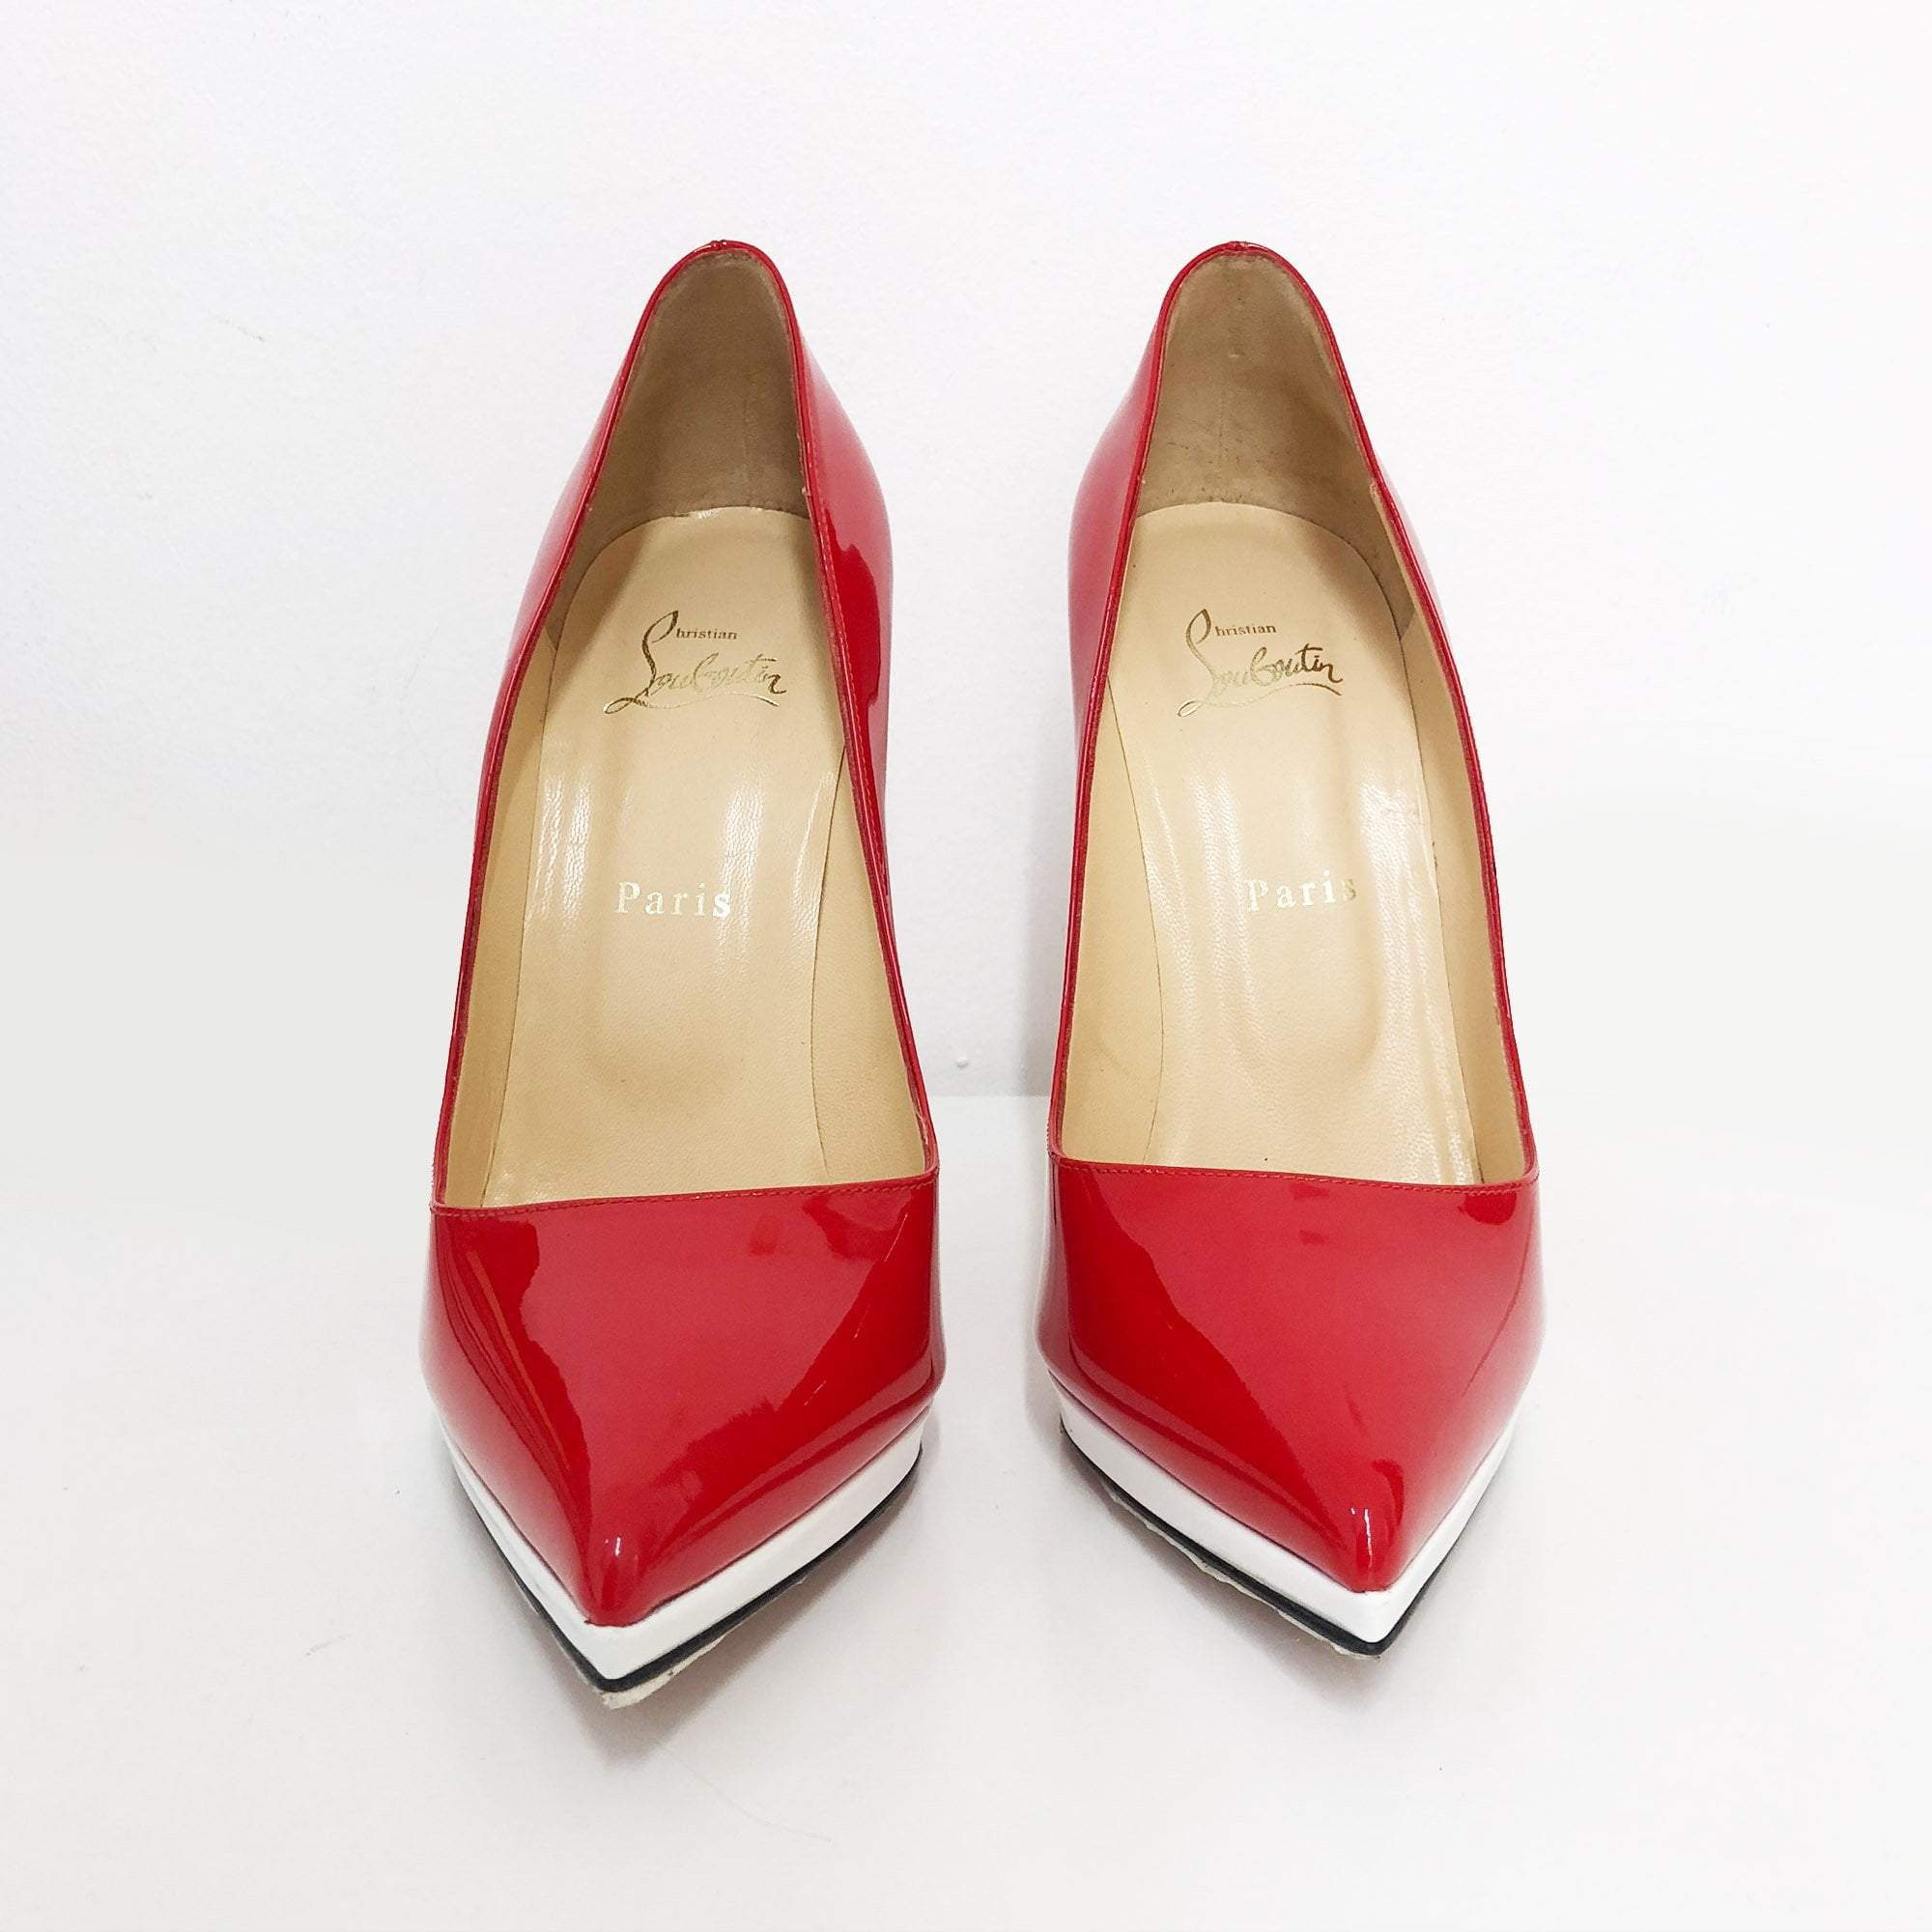 Christian Louboutin Tricolor Red/Black/White Pointed Toe Pumps